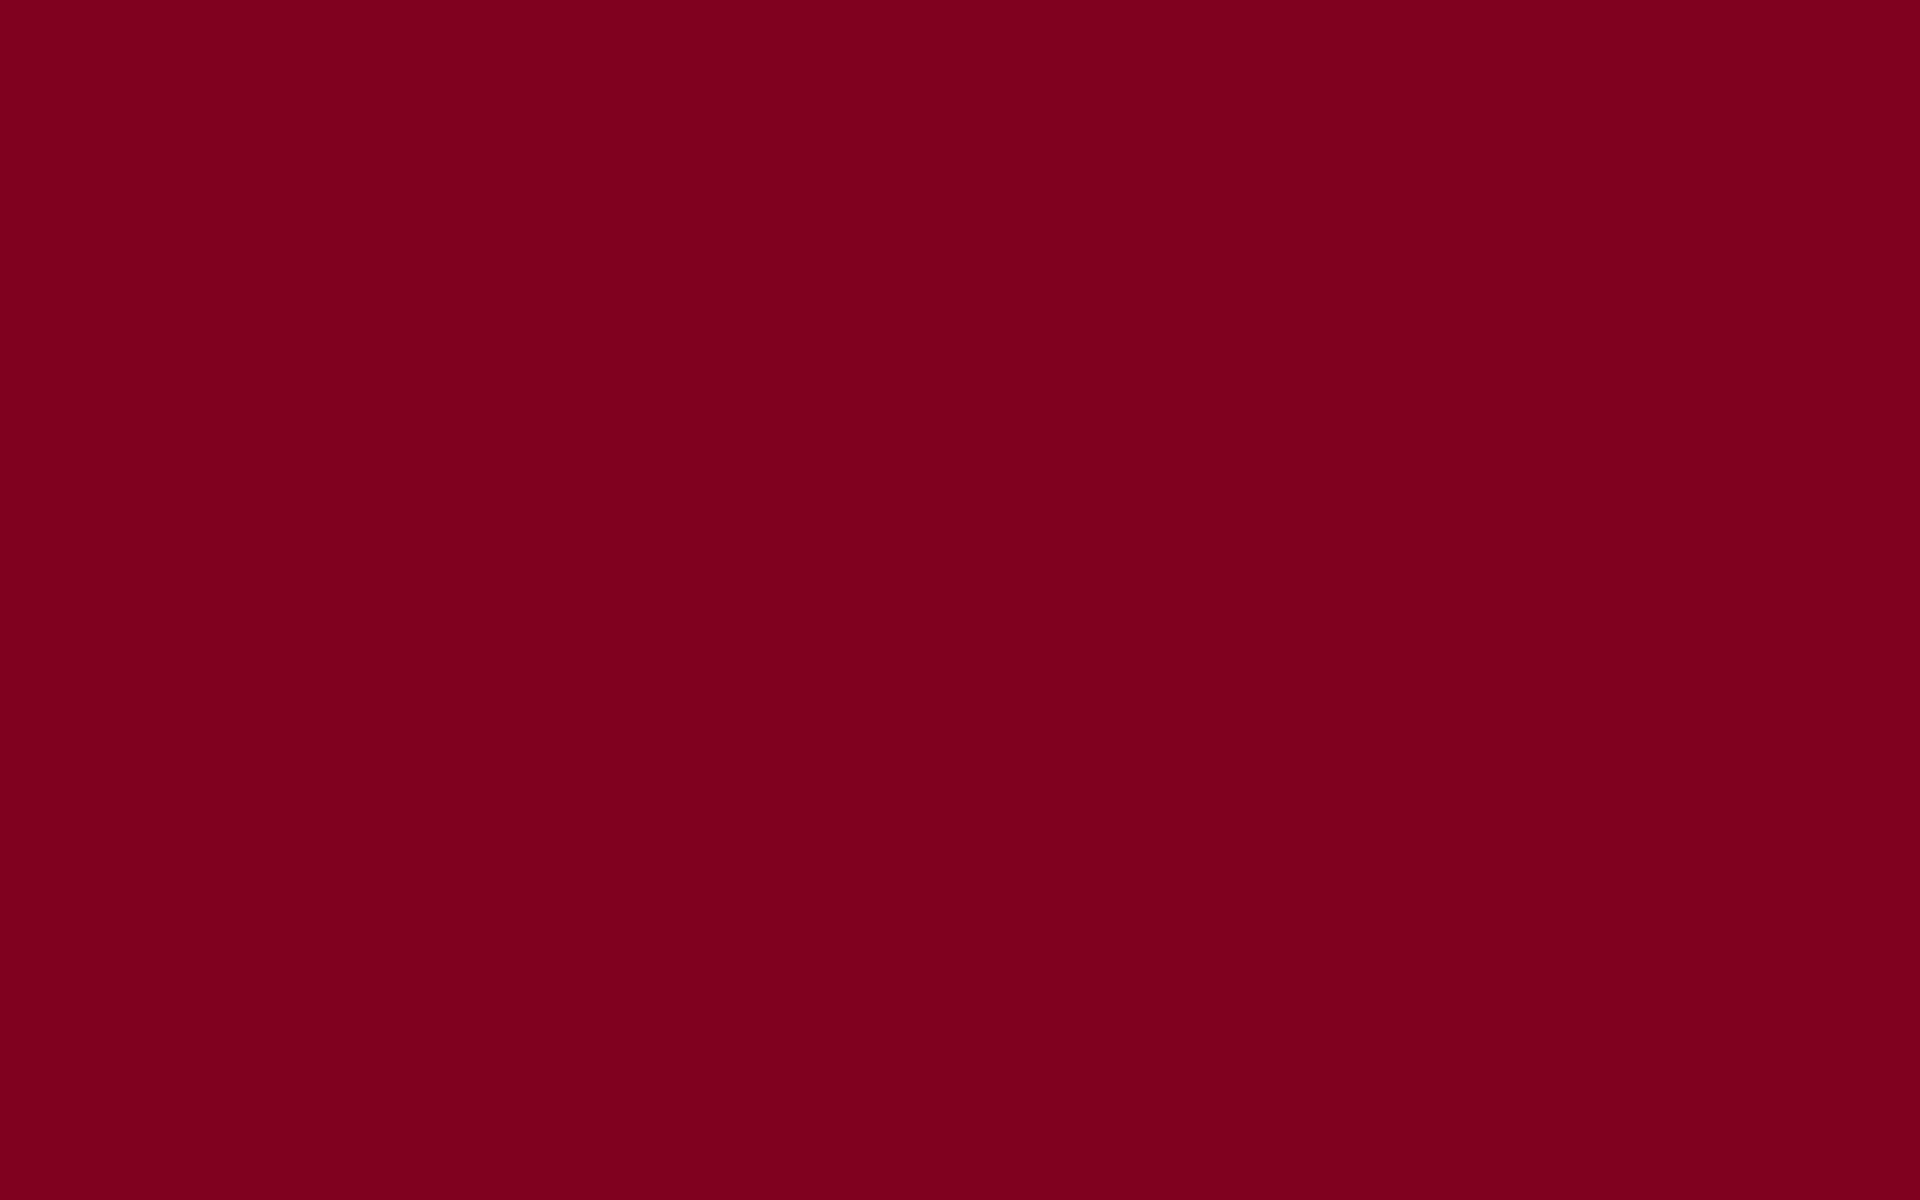 1920x1200 Burgundy Solid Color Background